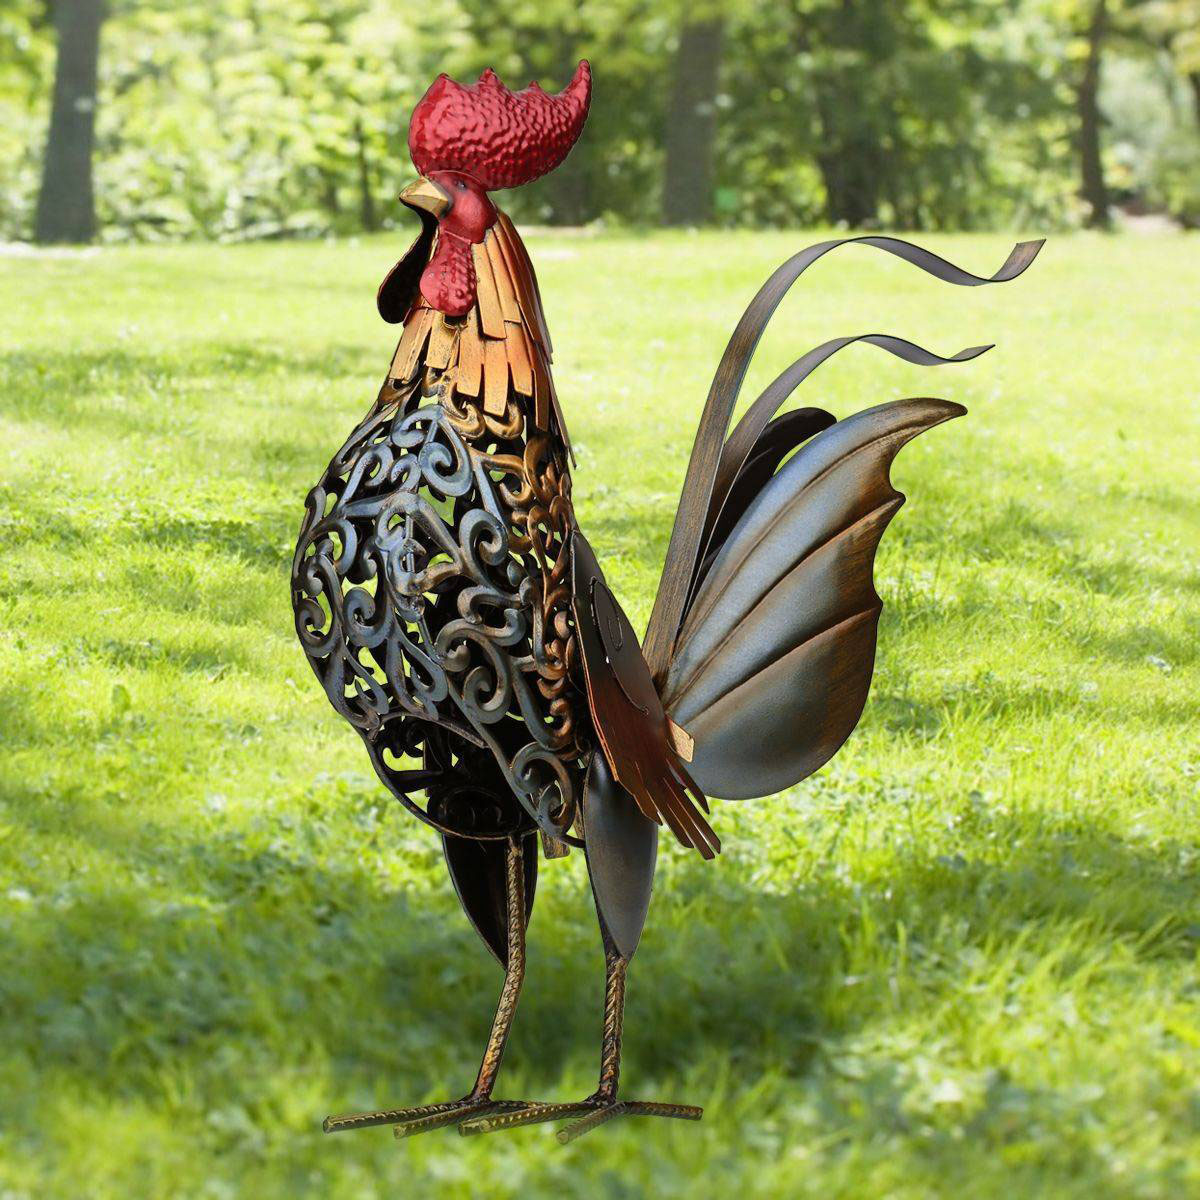 Creative home gardening decoration modern style metal cock decoration wedding party desk home garden decoration decoration